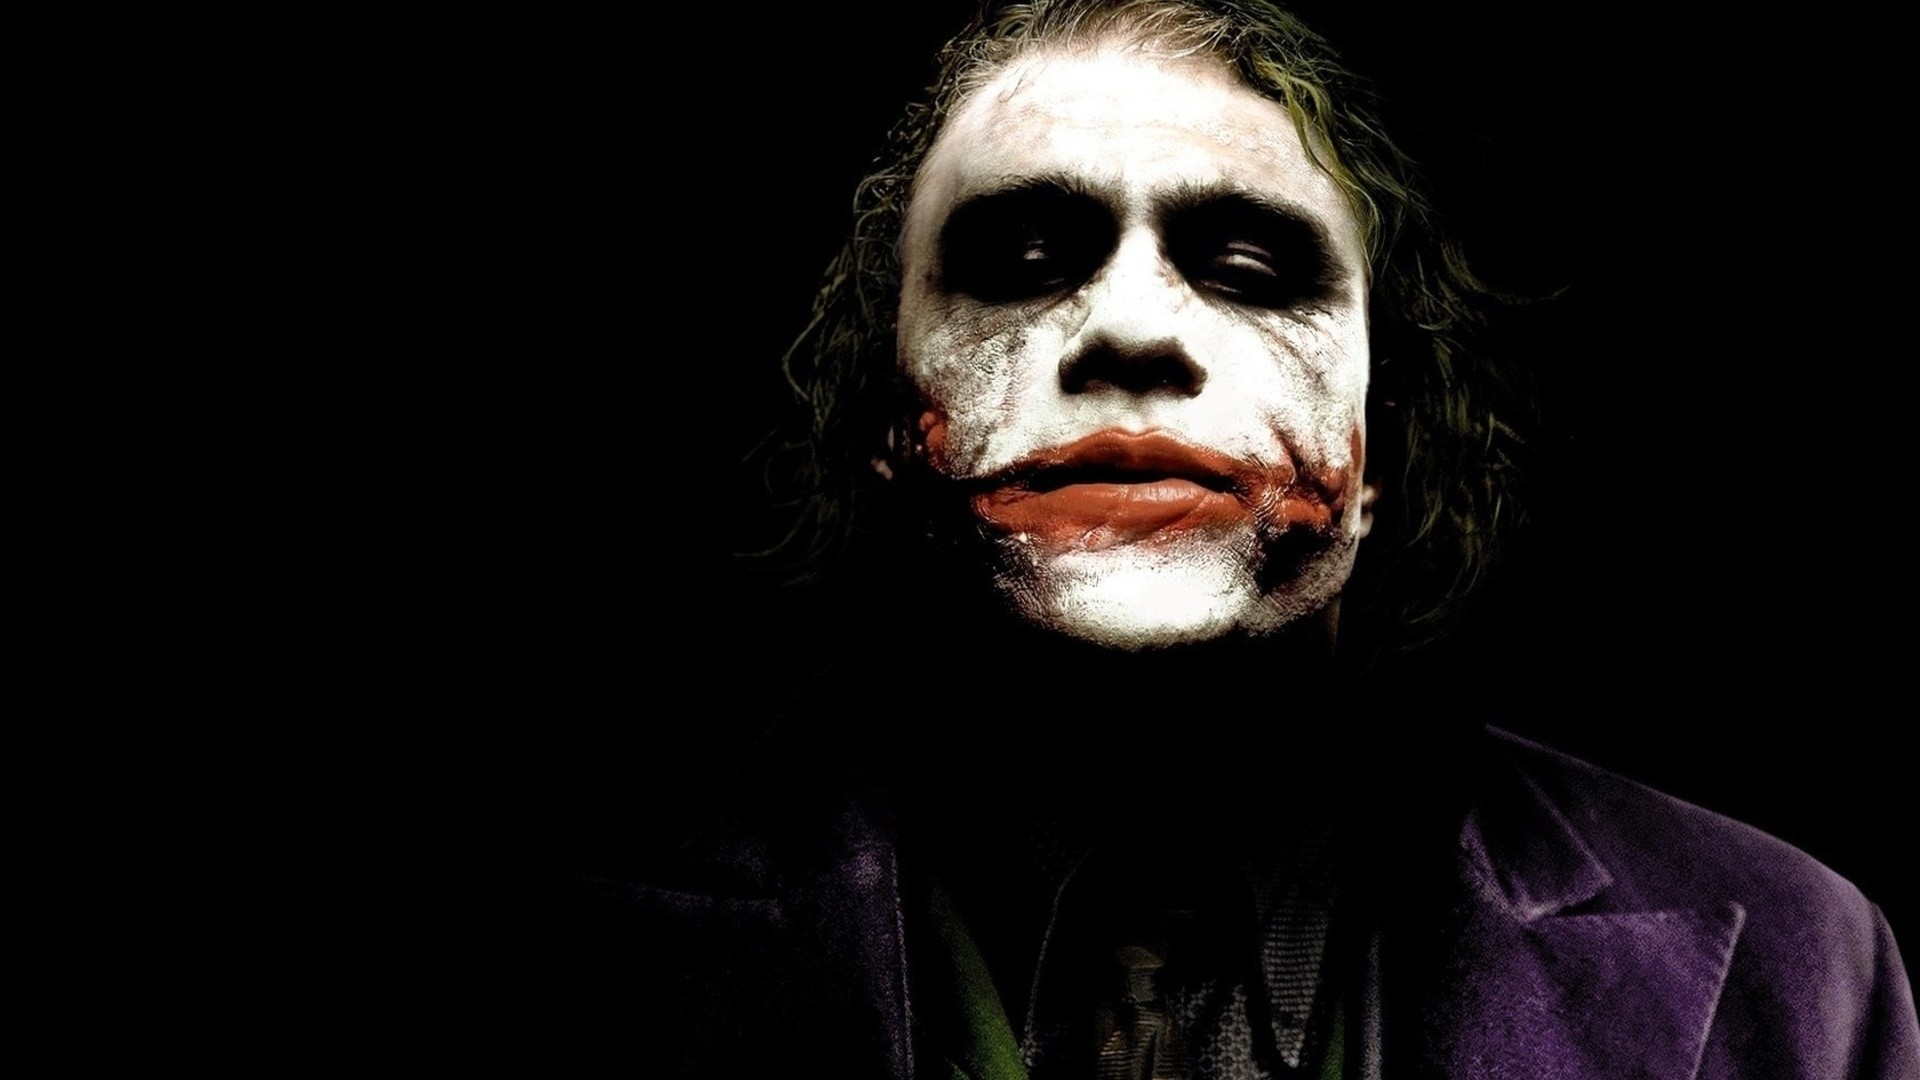 Heath Ledger Joker Wallpaper Wallpapertag